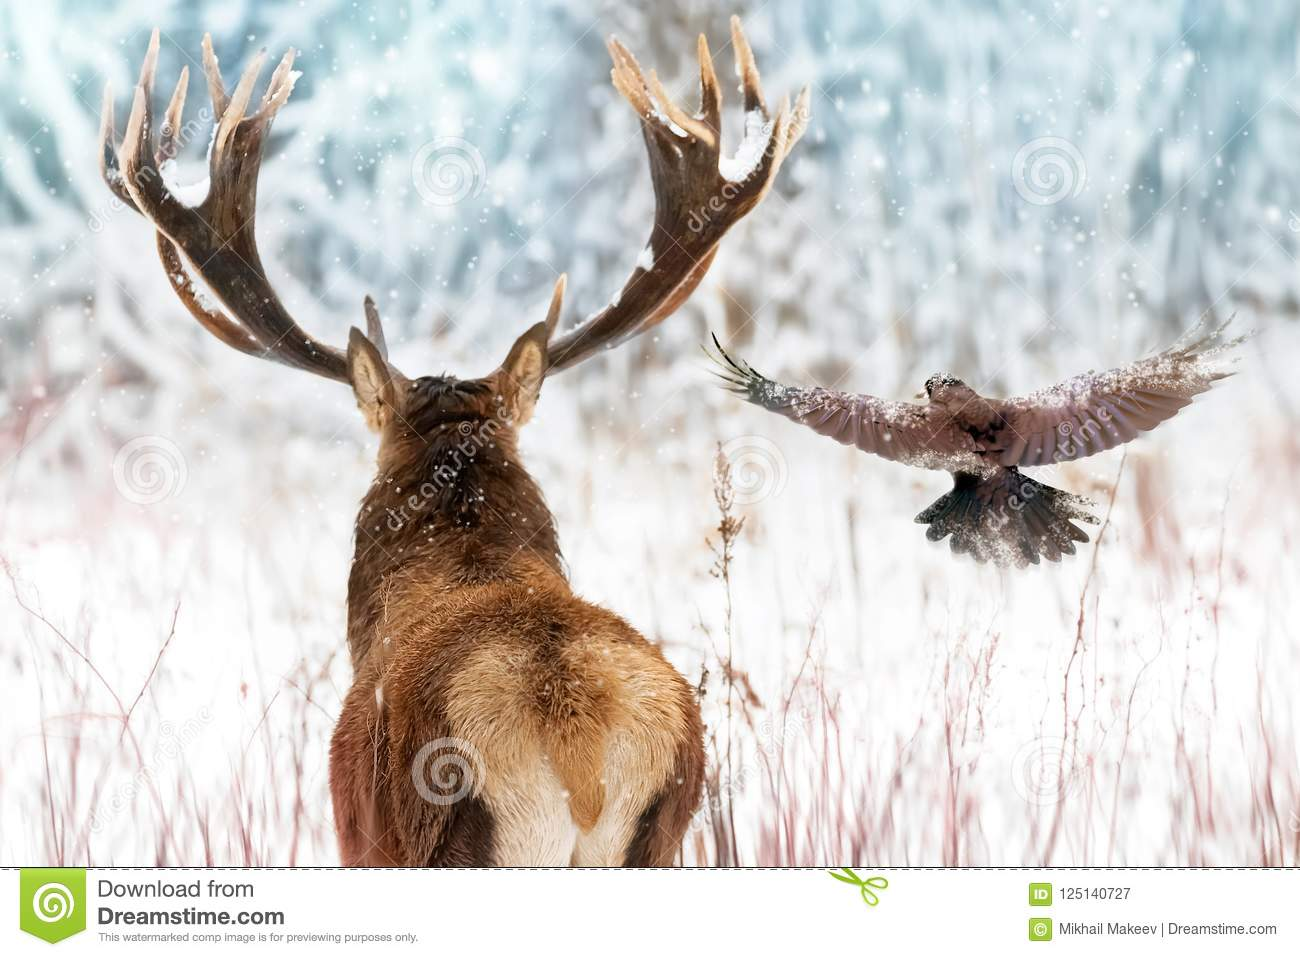 Noble deer with big horns and raven in flight in a winter fairy forest. Christmas winter image